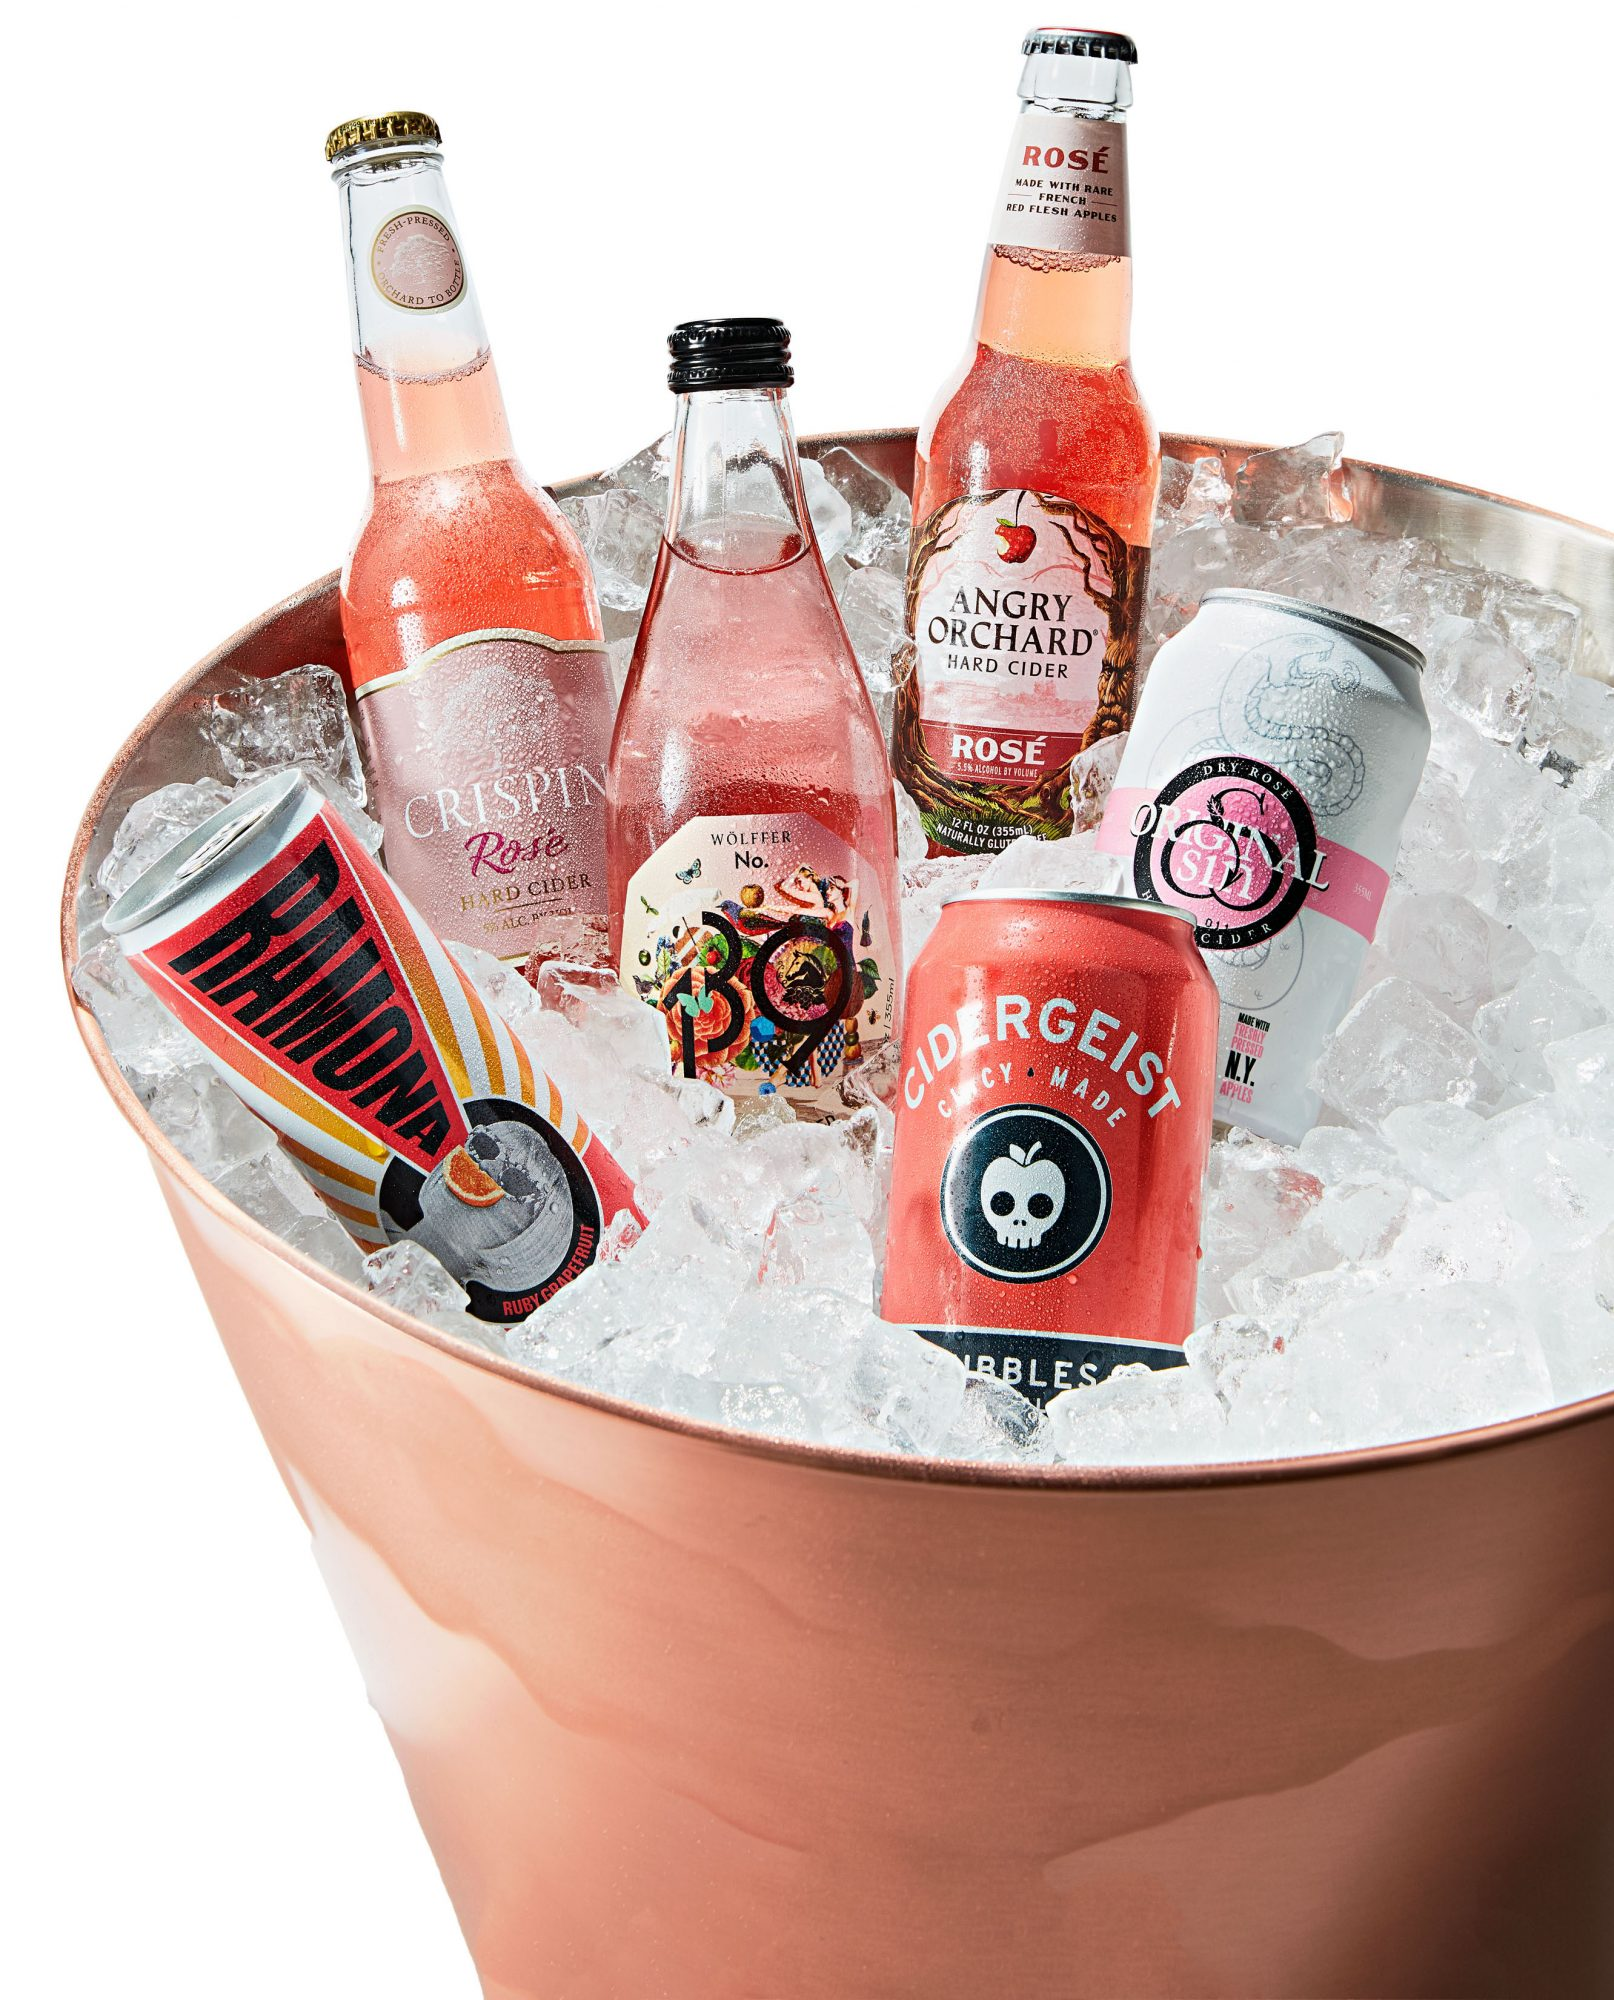 rose cans and bottles on ice